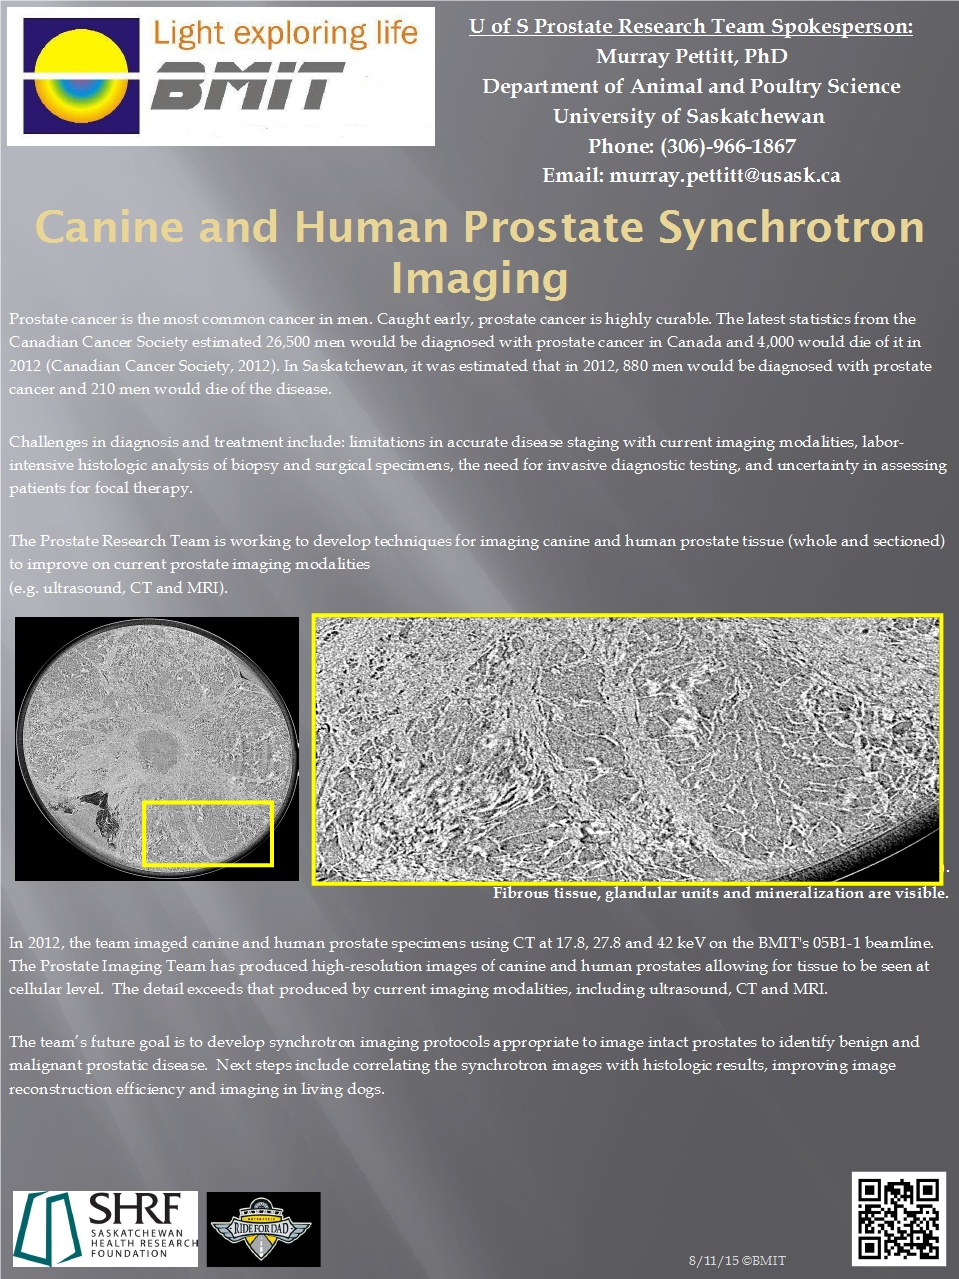 Canine and Human Prostate Synchrotron Imaging  Image